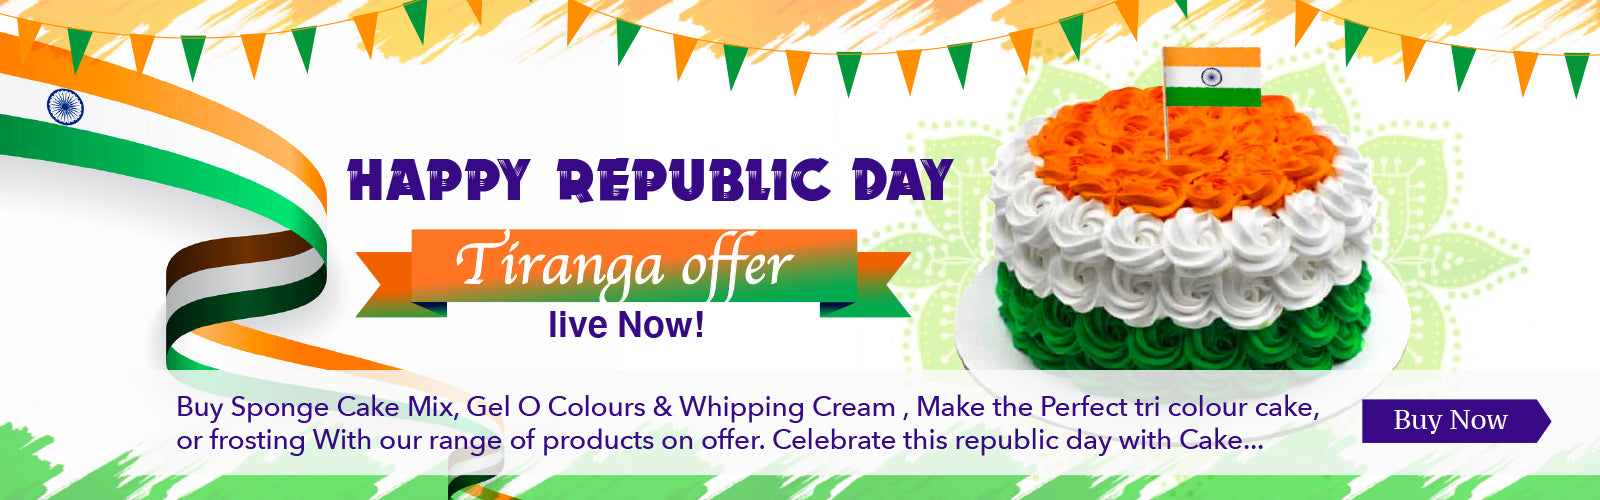 Republic day offer 02